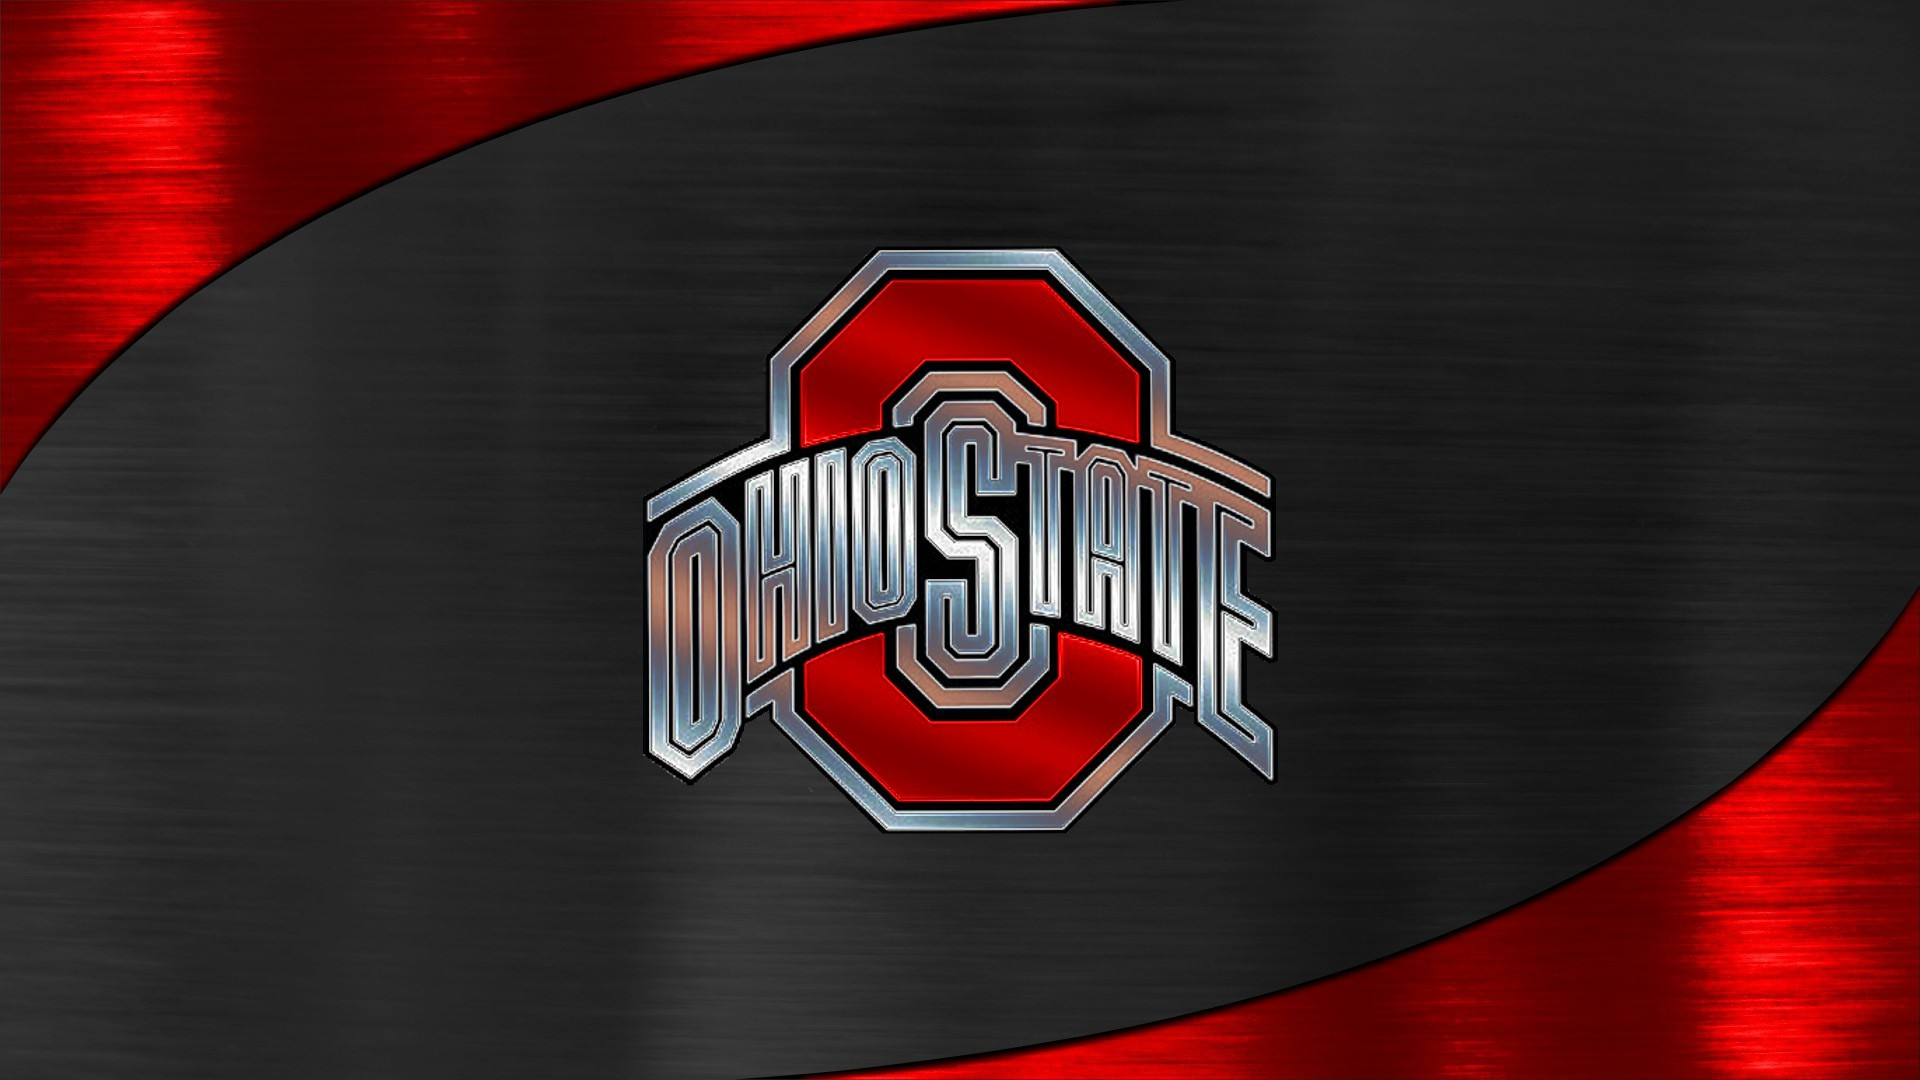 … Newest Ohio State Football Wallpapers Wallpaper HD 1080p Free Download  For Laptop 4K Mobile Wallpapers Desktop